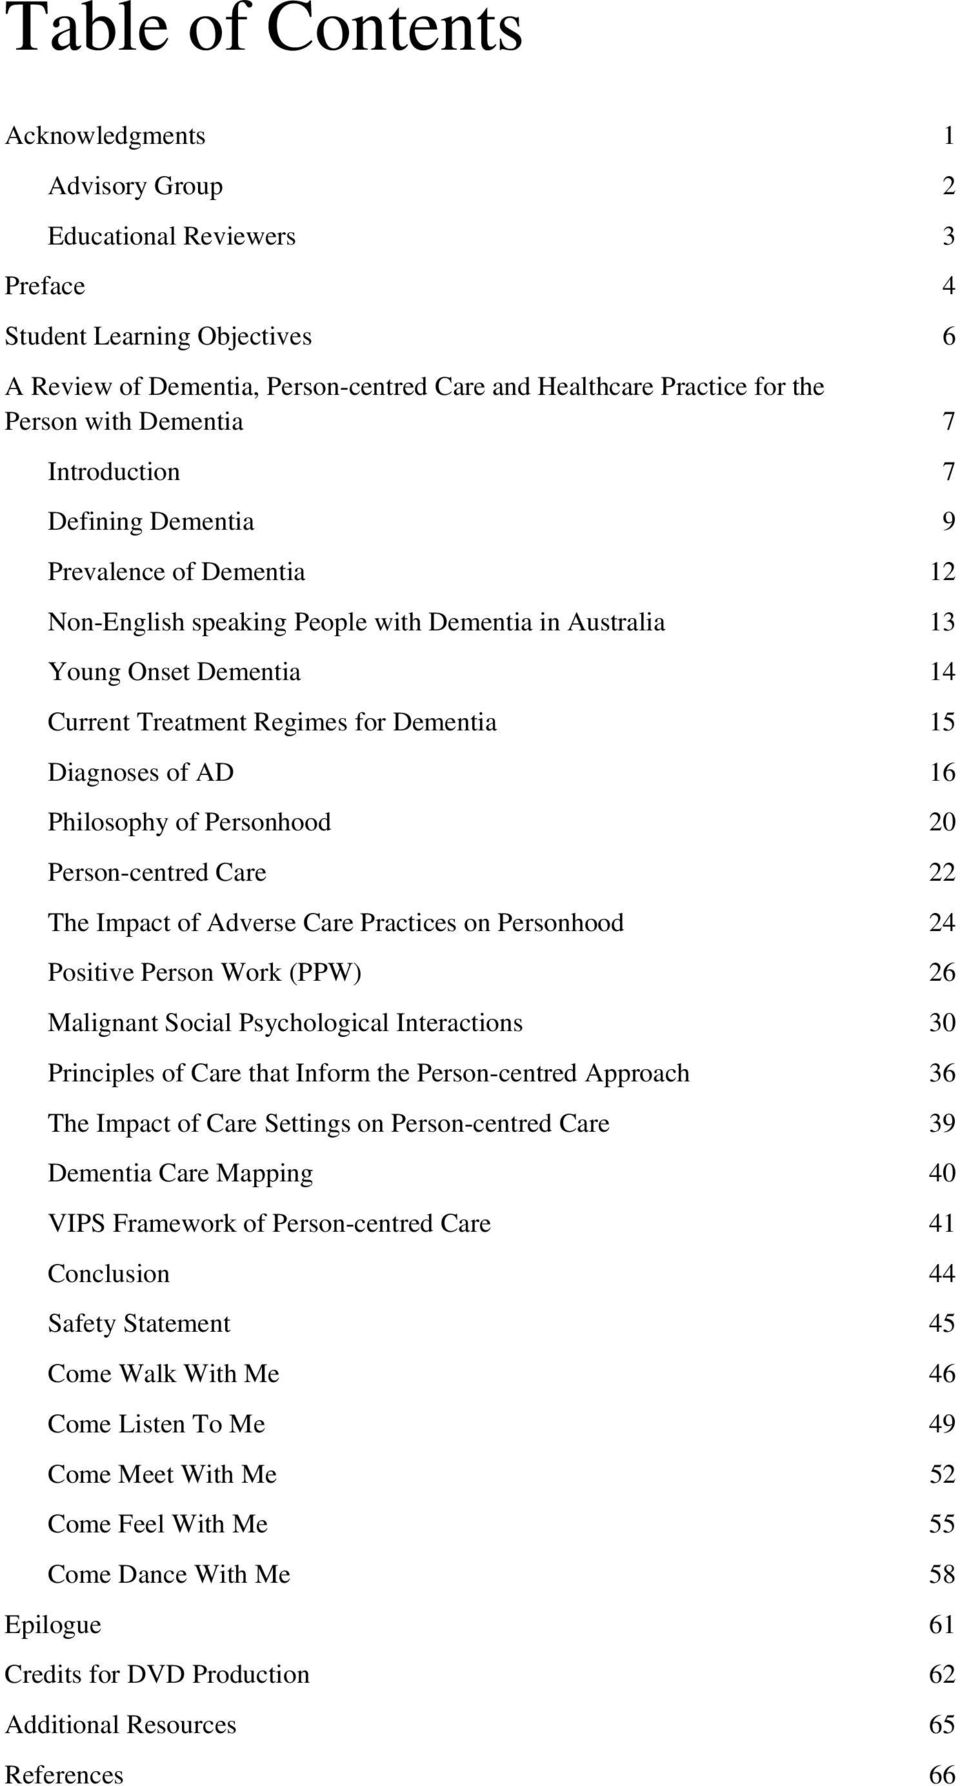 15 Diagnoses of AD 16 Philosophy of Personhood 20 Person-centred Care 22 The Impact of Adverse Care Practices on Personhood 24 Positive Person Work (PPW) 26 Malignant Social Psychological